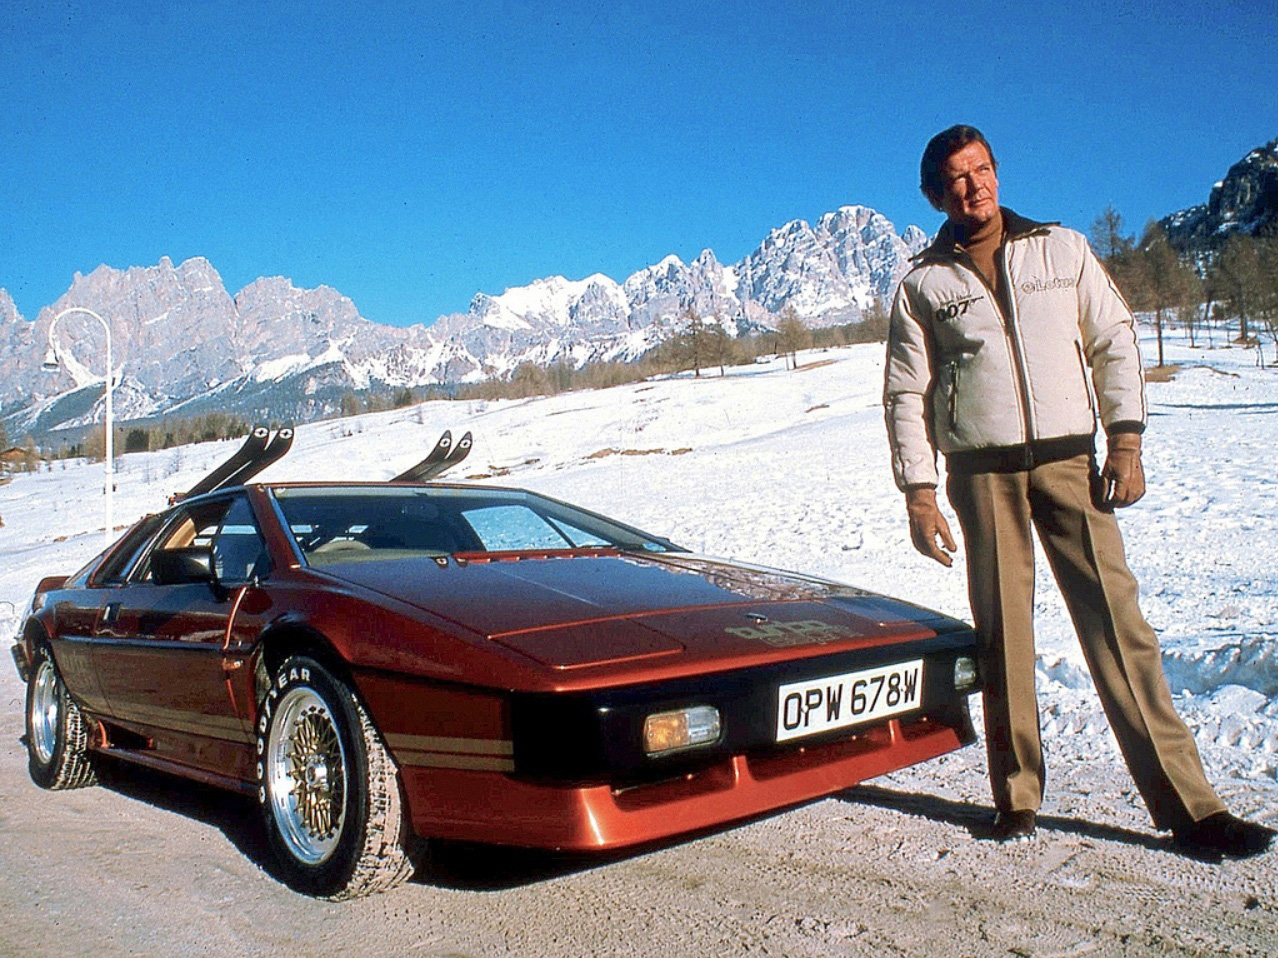 Roger Moore Esprit Turbo 25 Things You Didn't Know About Magnum, P.I.